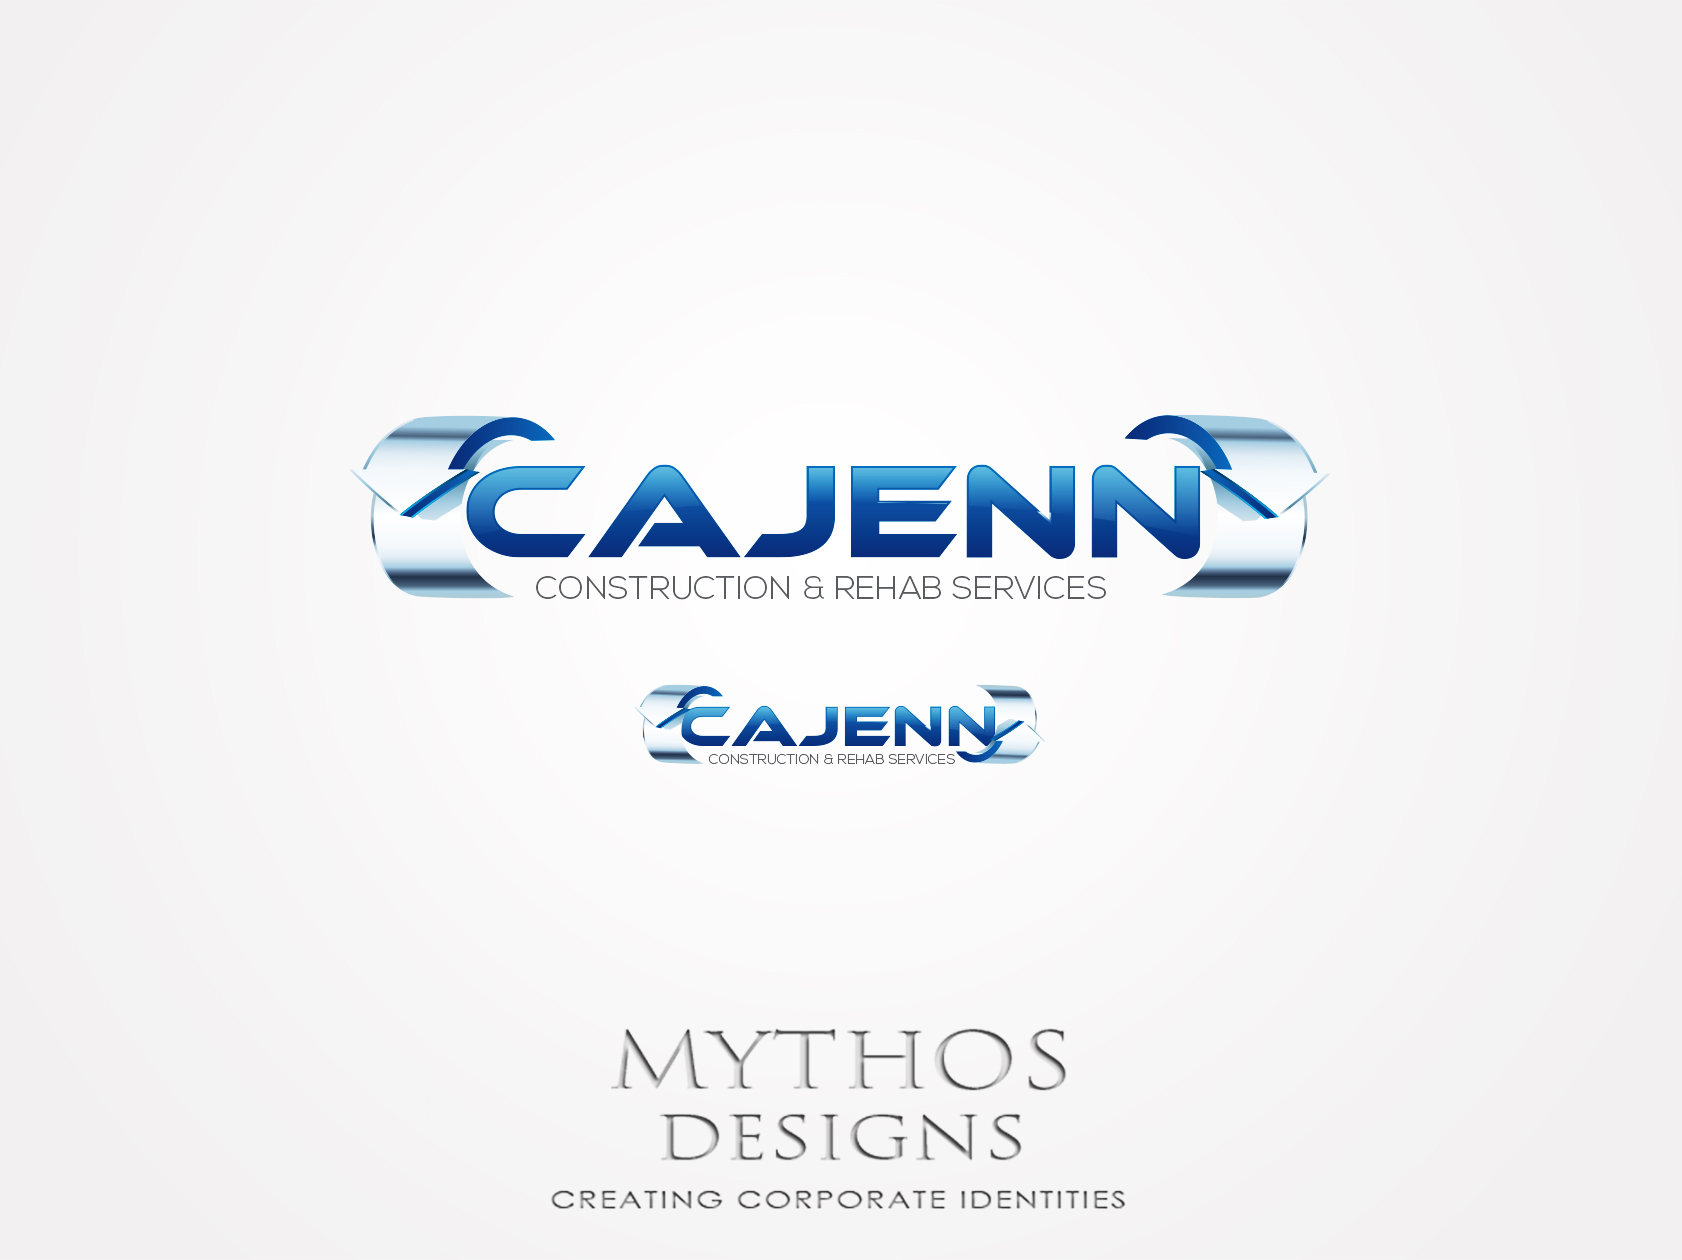 Logo Design by Mythos Designs - Entry No. 316 in the Logo Design Contest New Logo Design for CaJenn Construction & Rehab Services.